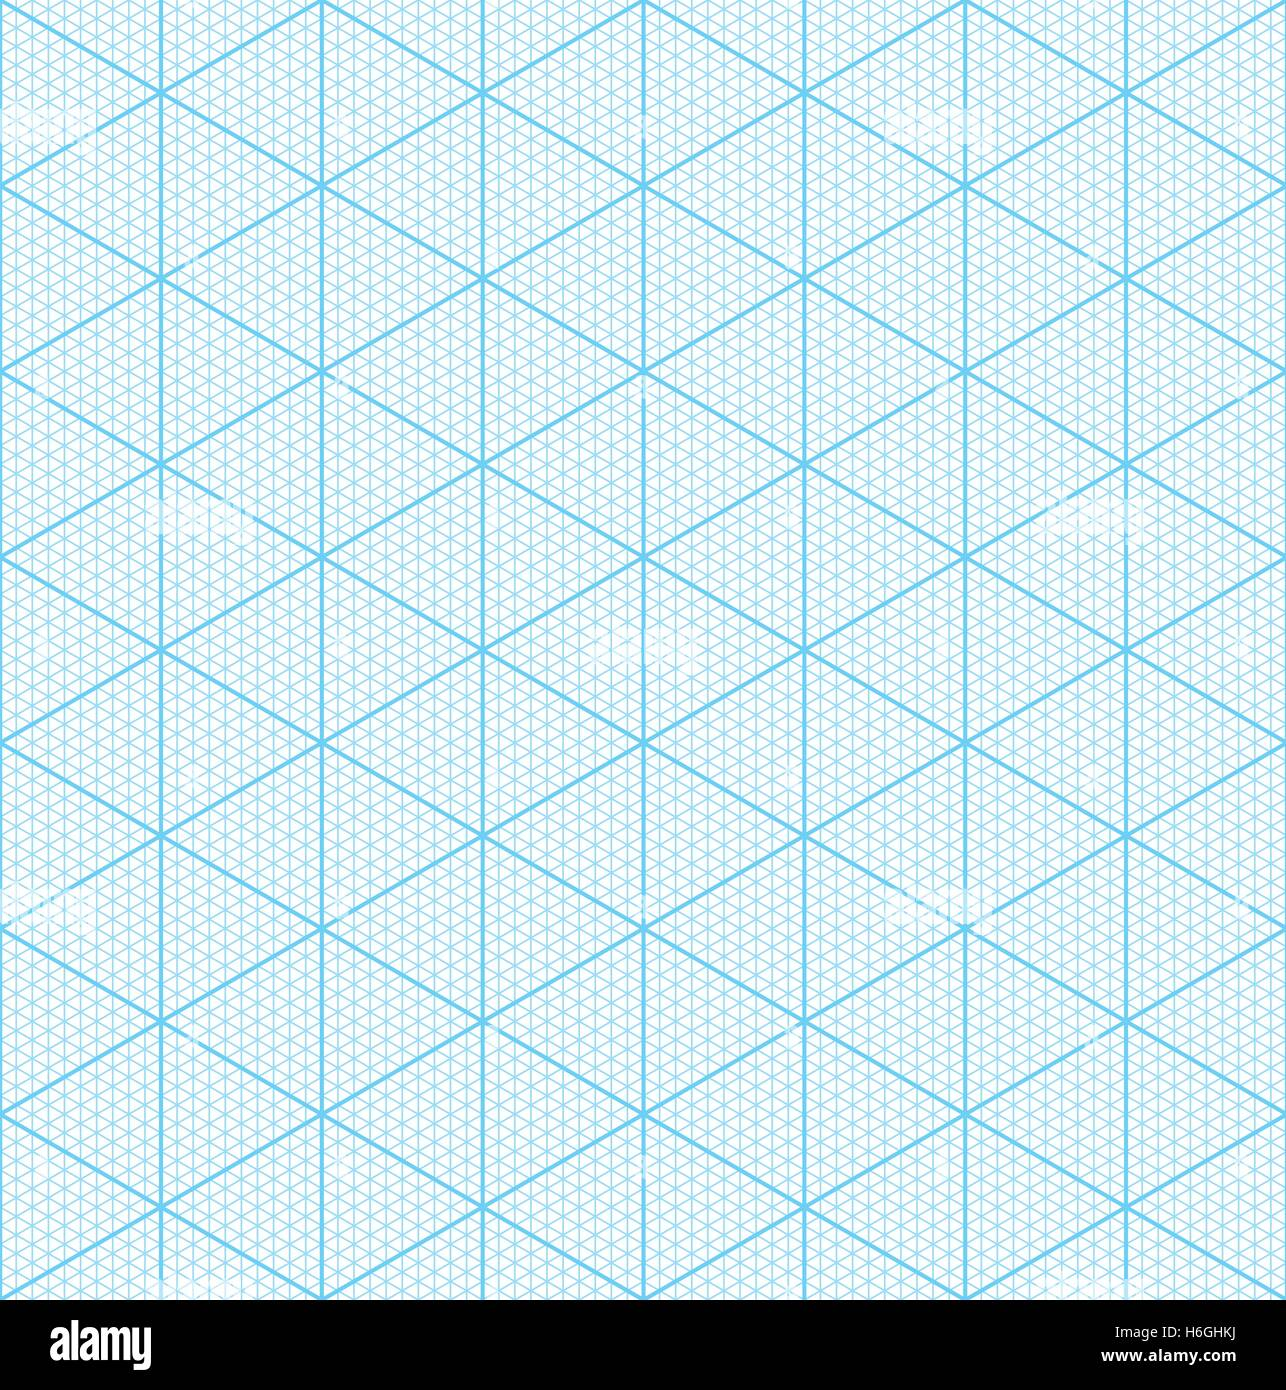 Isometric Graph Paper For 3D Design. Seamless Vector Pattern